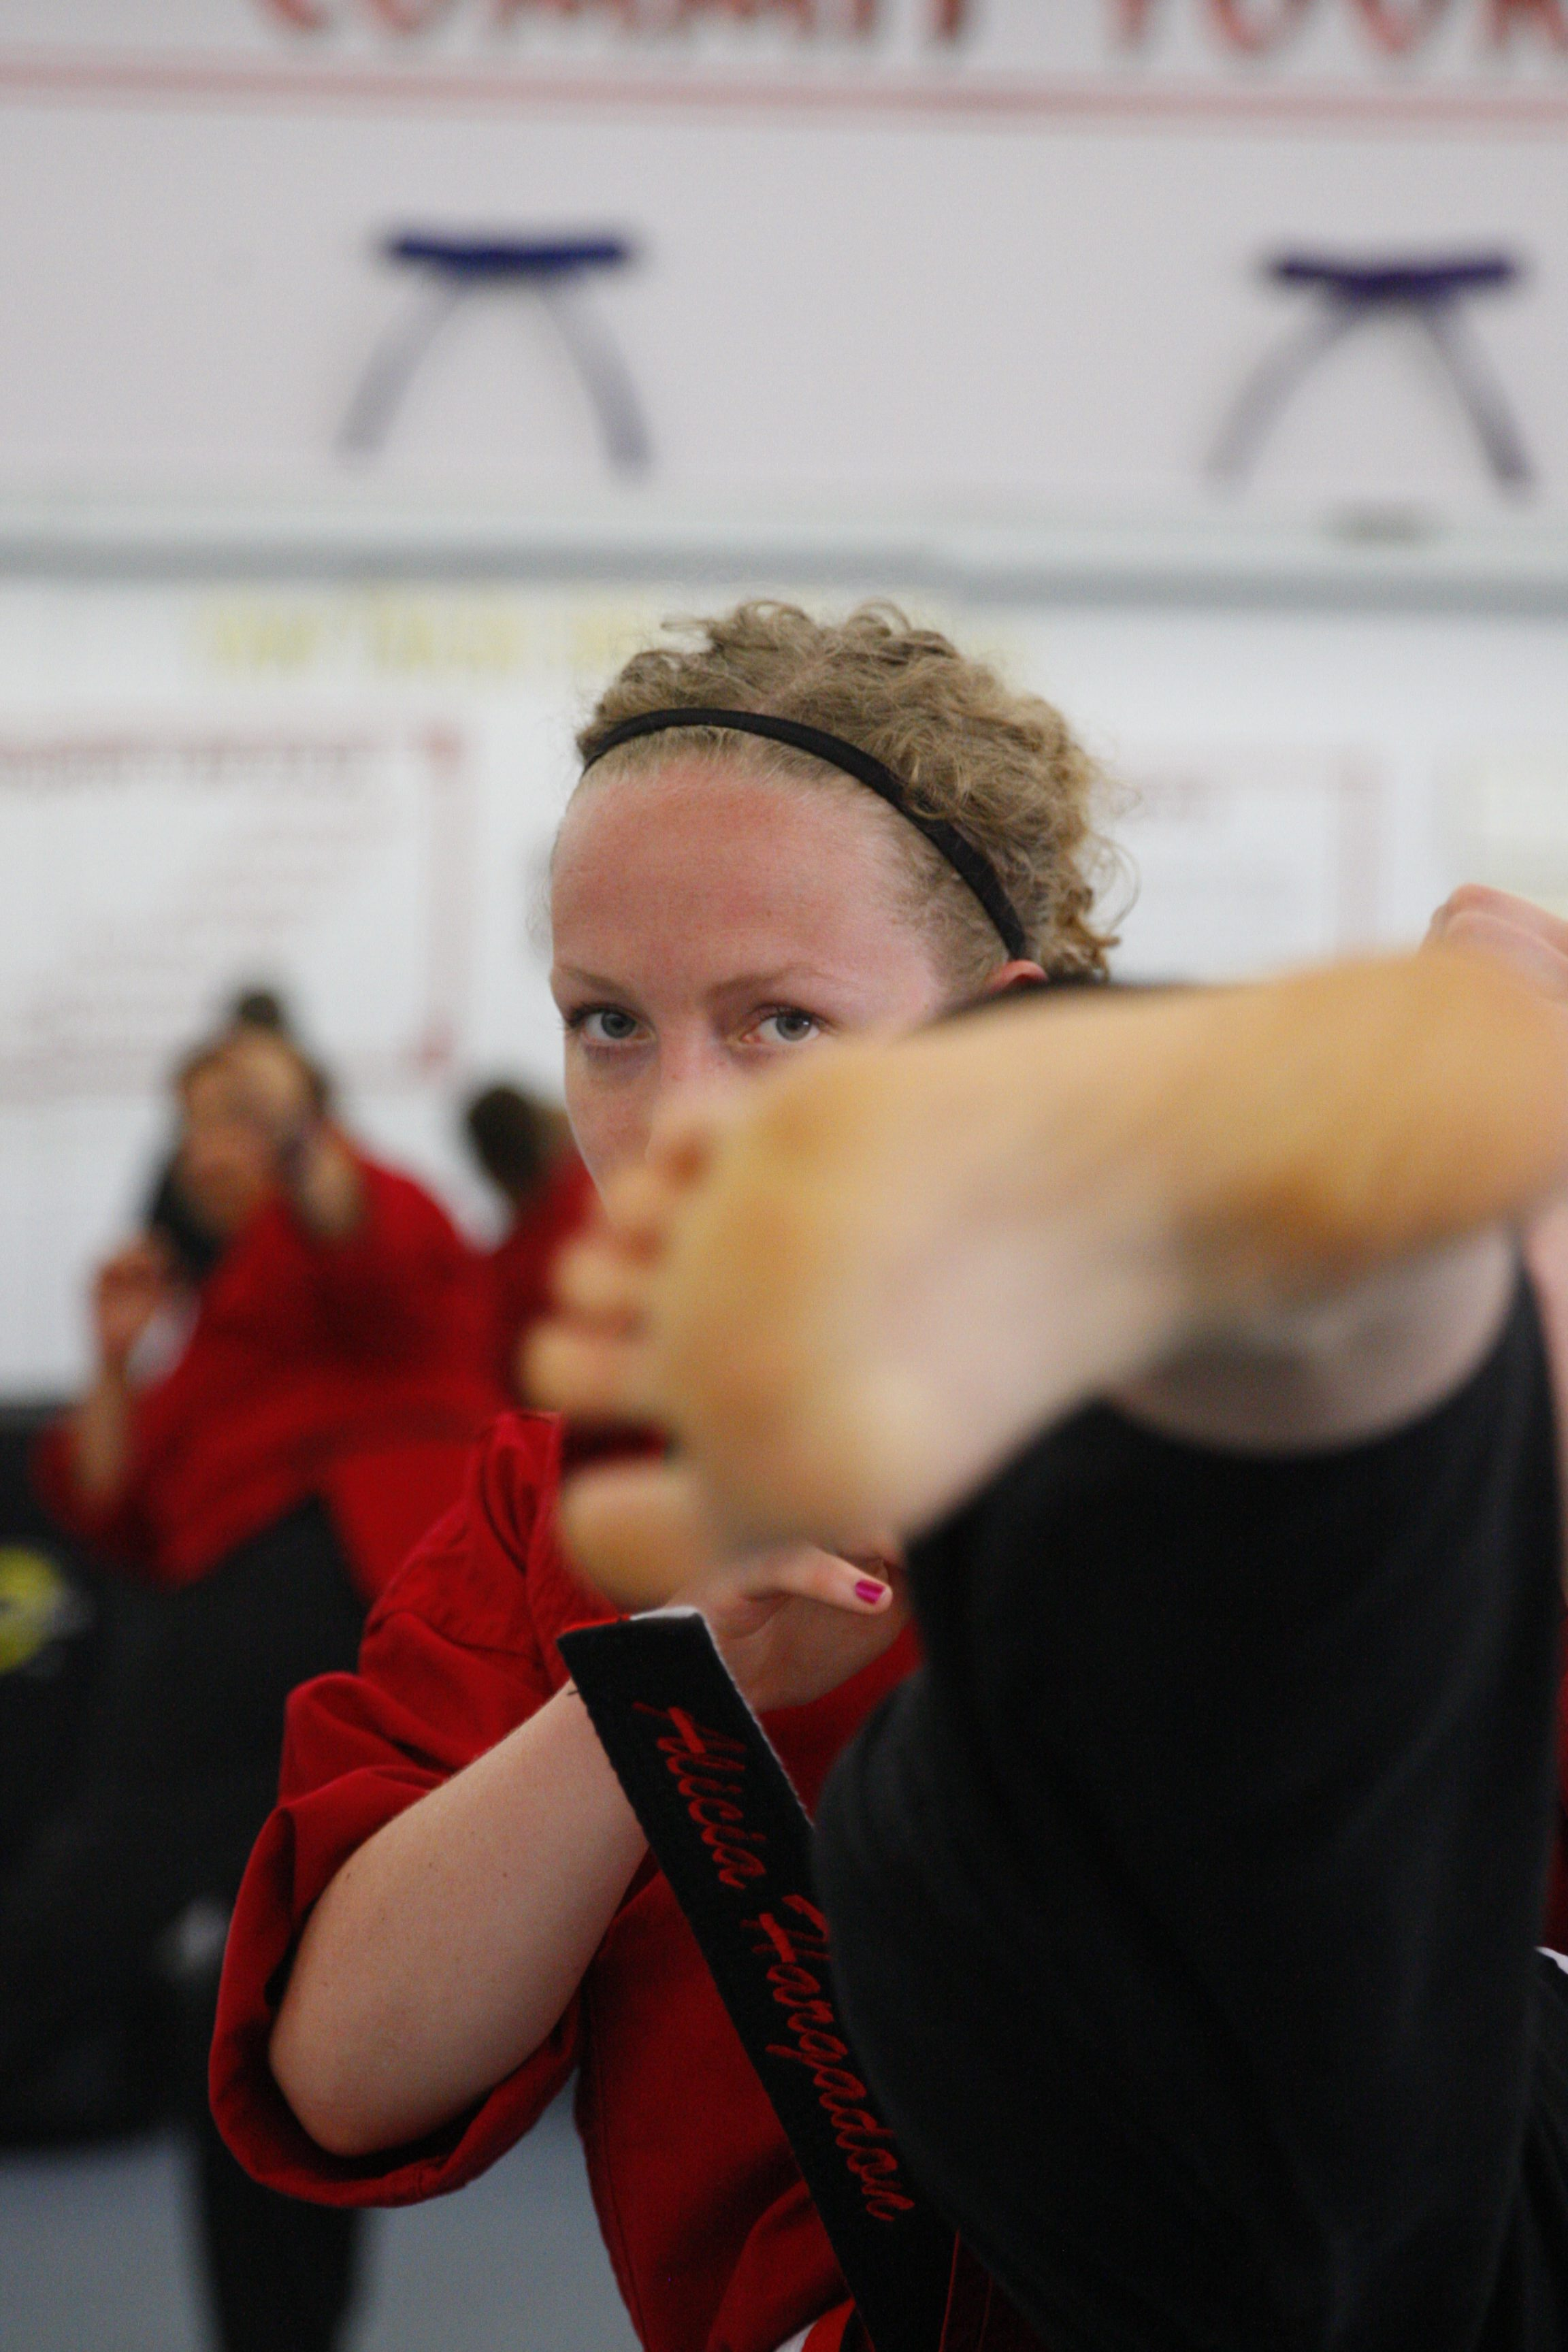 Alicia Hargadon, a nurse at Roswell Park, earned a fifth-degree black belt trines at the New York Karate Center on Tuesday, Aug. 2, 2016. (Harry Scull Jr./Buffalo News)